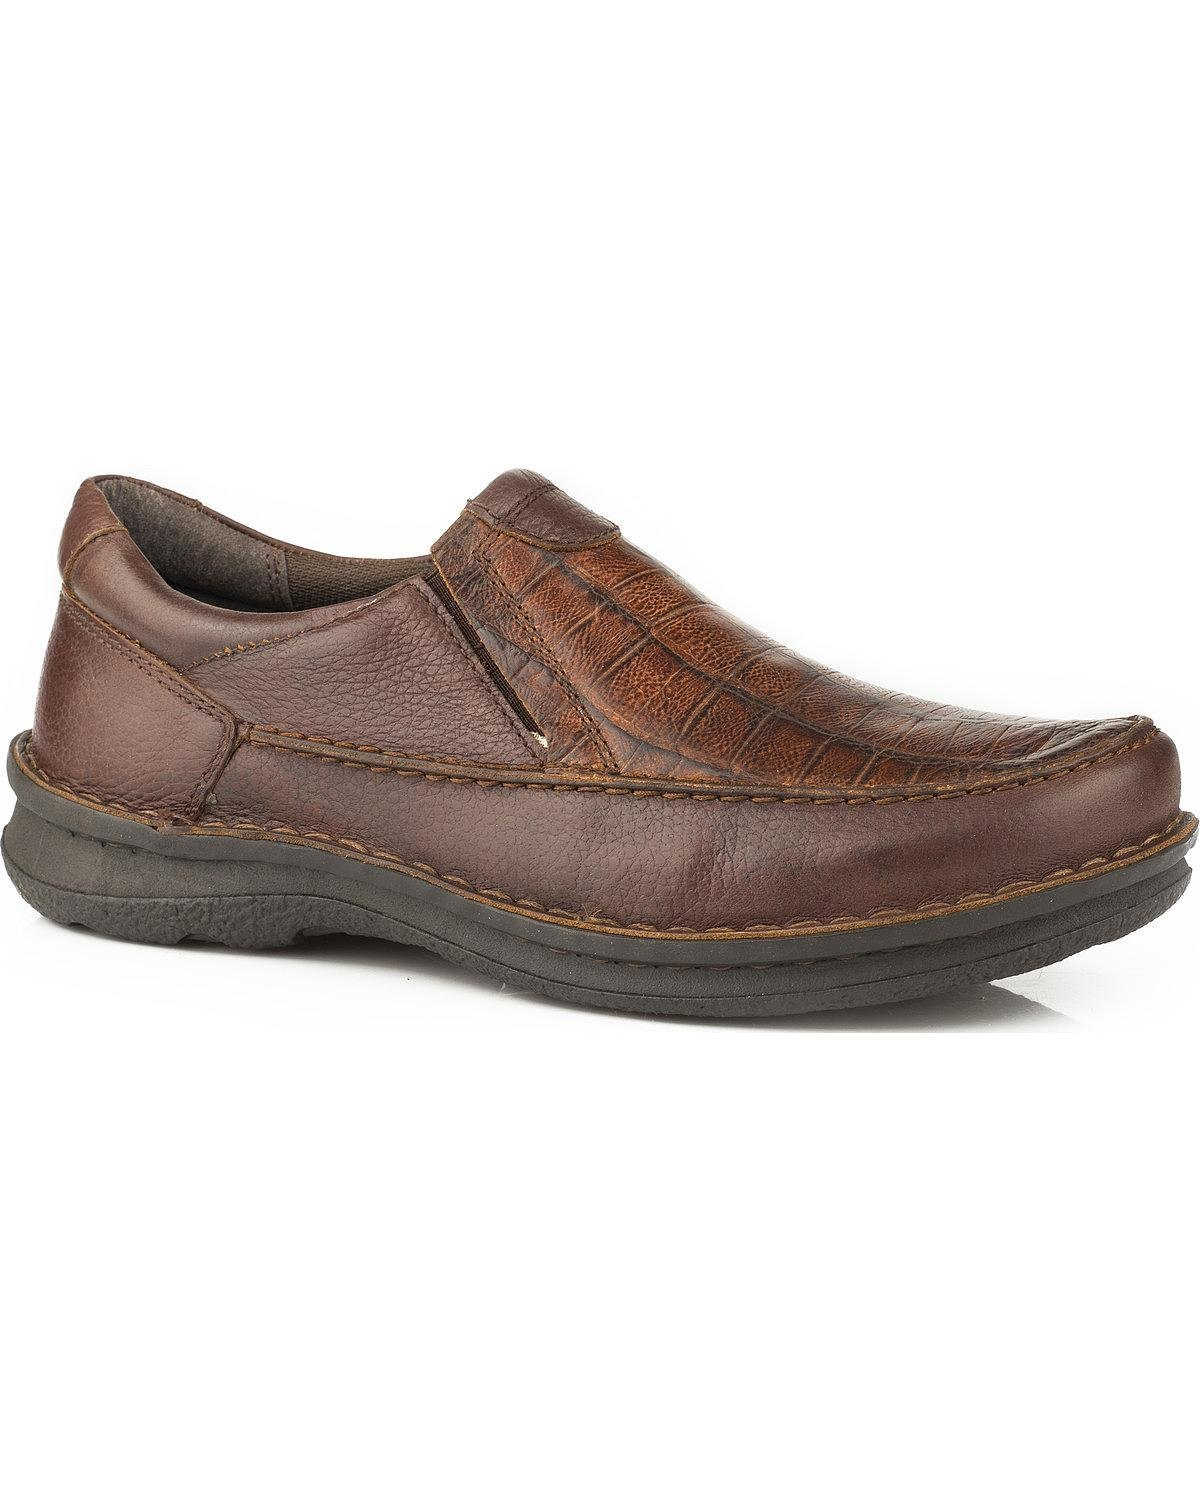 Roper Paxton Mens Brown Leather Slip-On Shoes